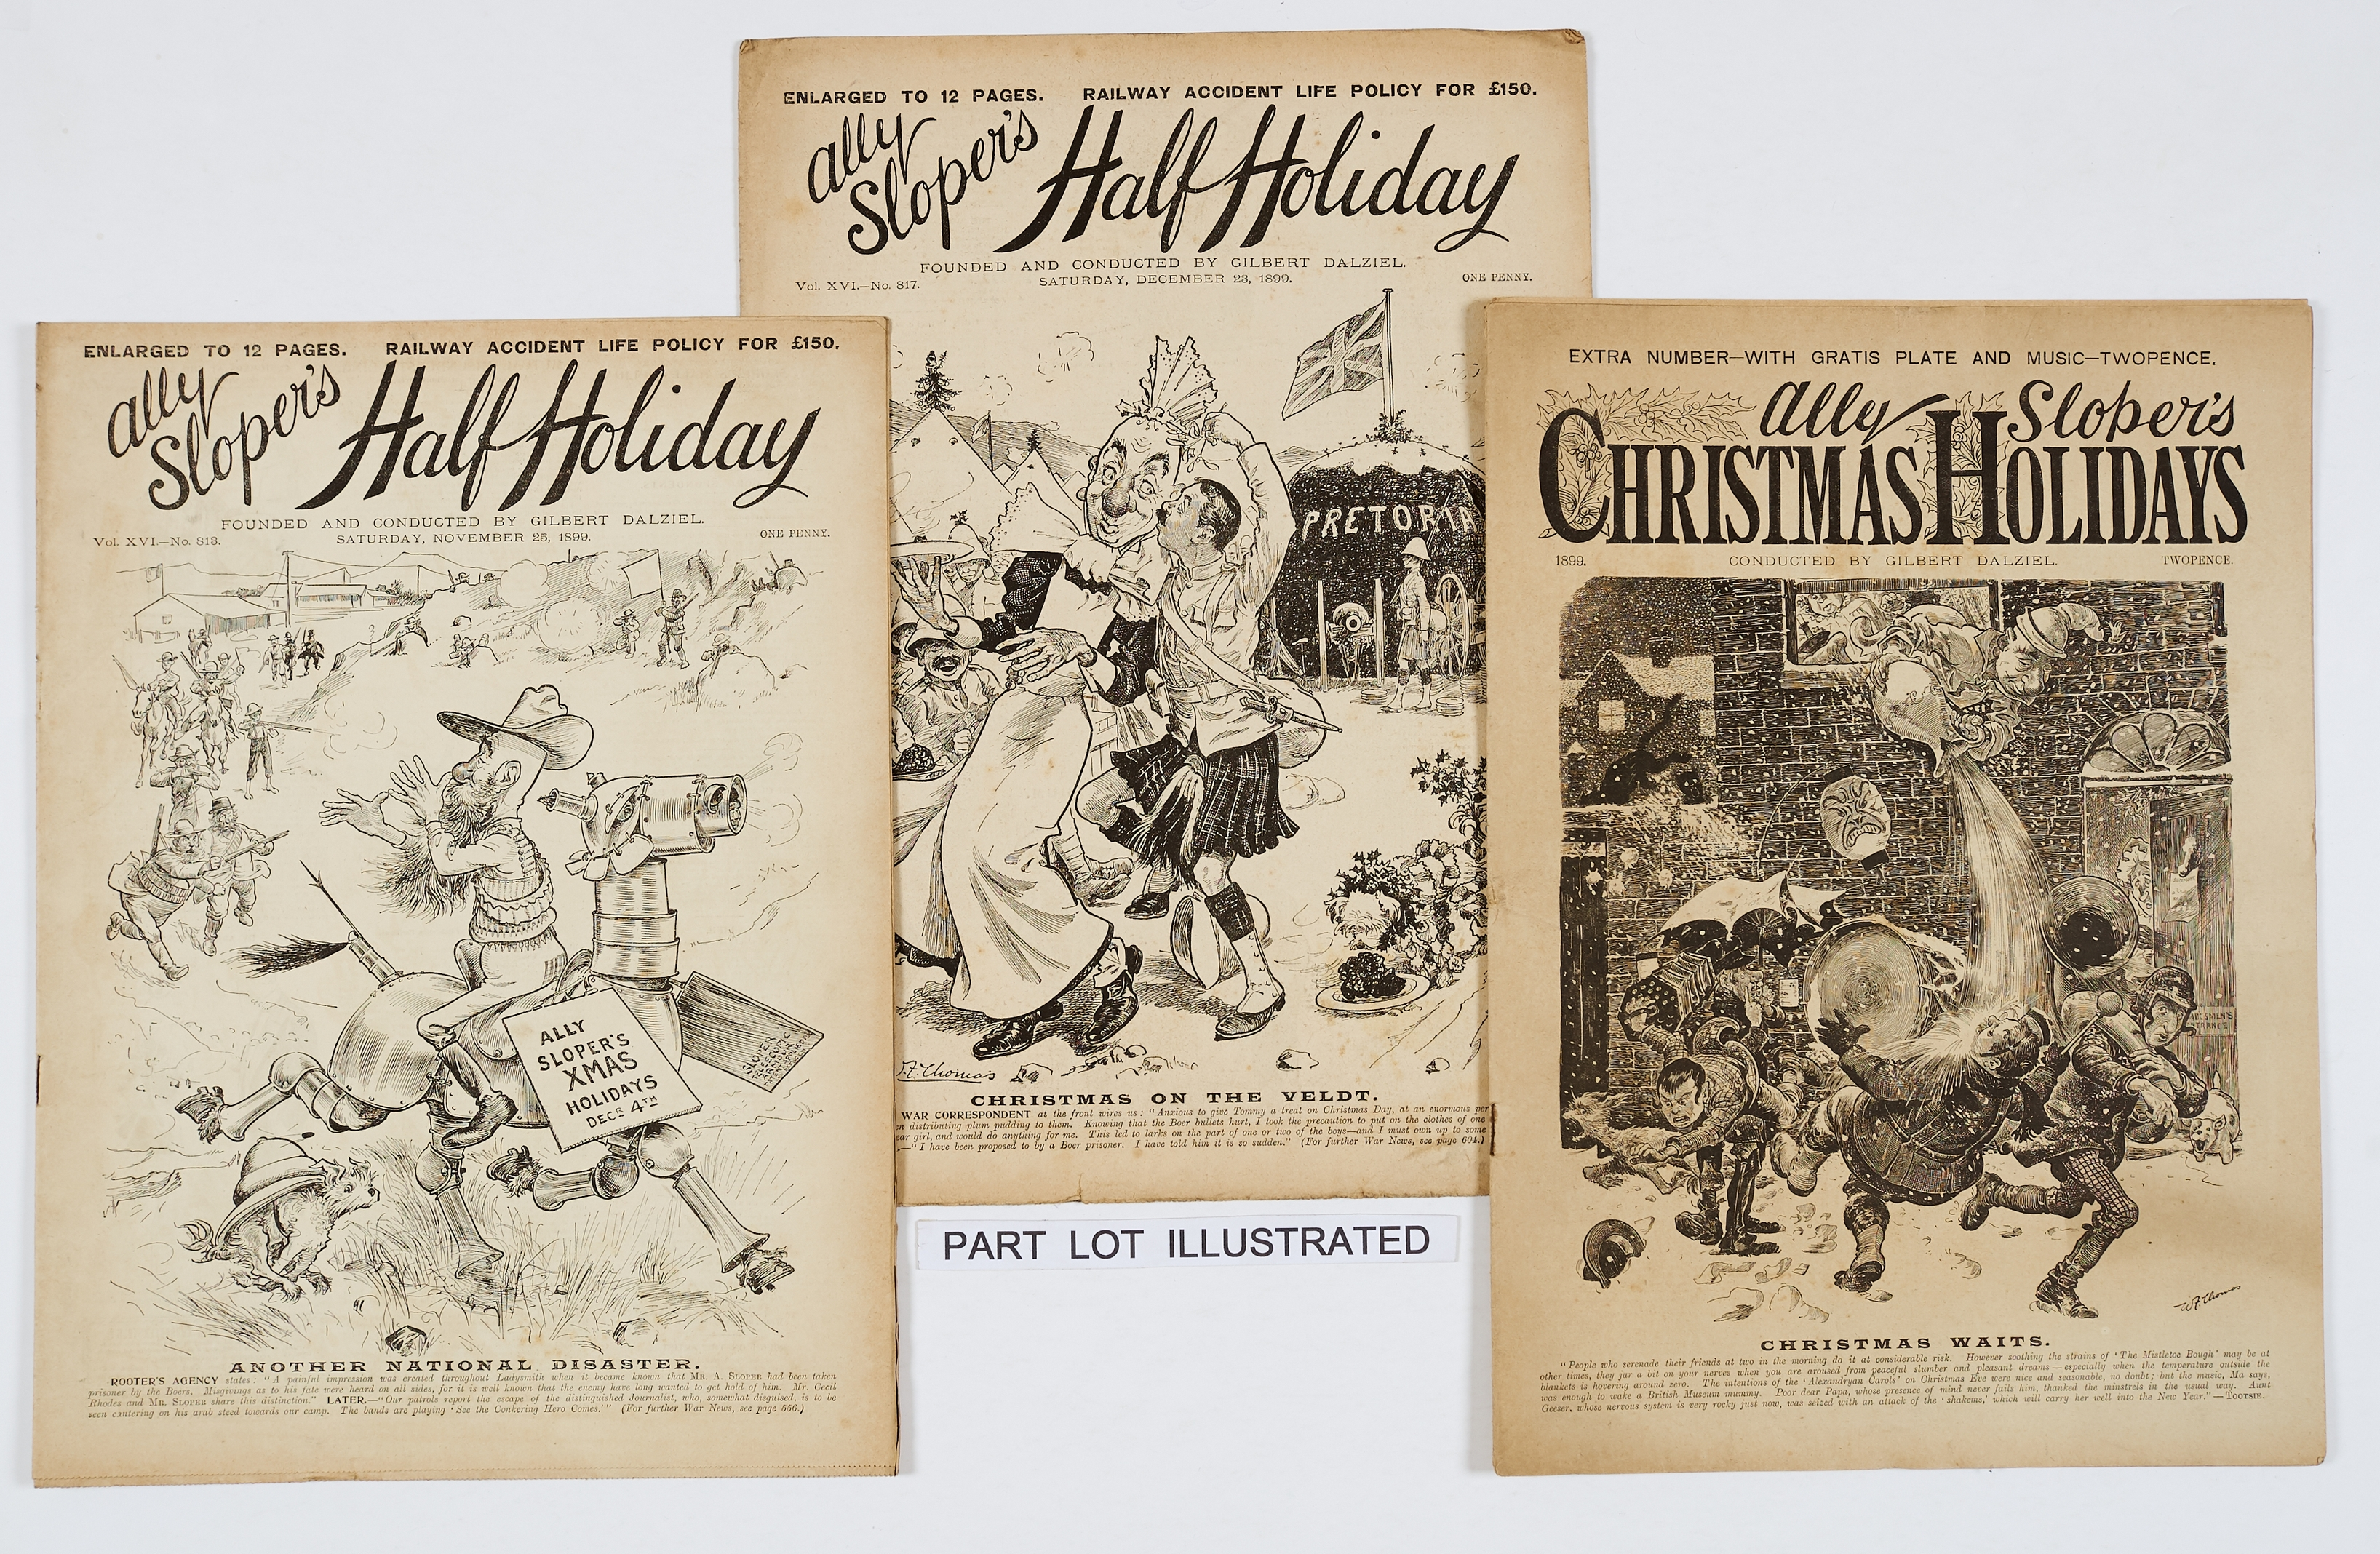 Lot 1 - Ally Sloper's Half Holiday (1899) 767-818. Complete year with Ally Sloper's Christmas Holidays